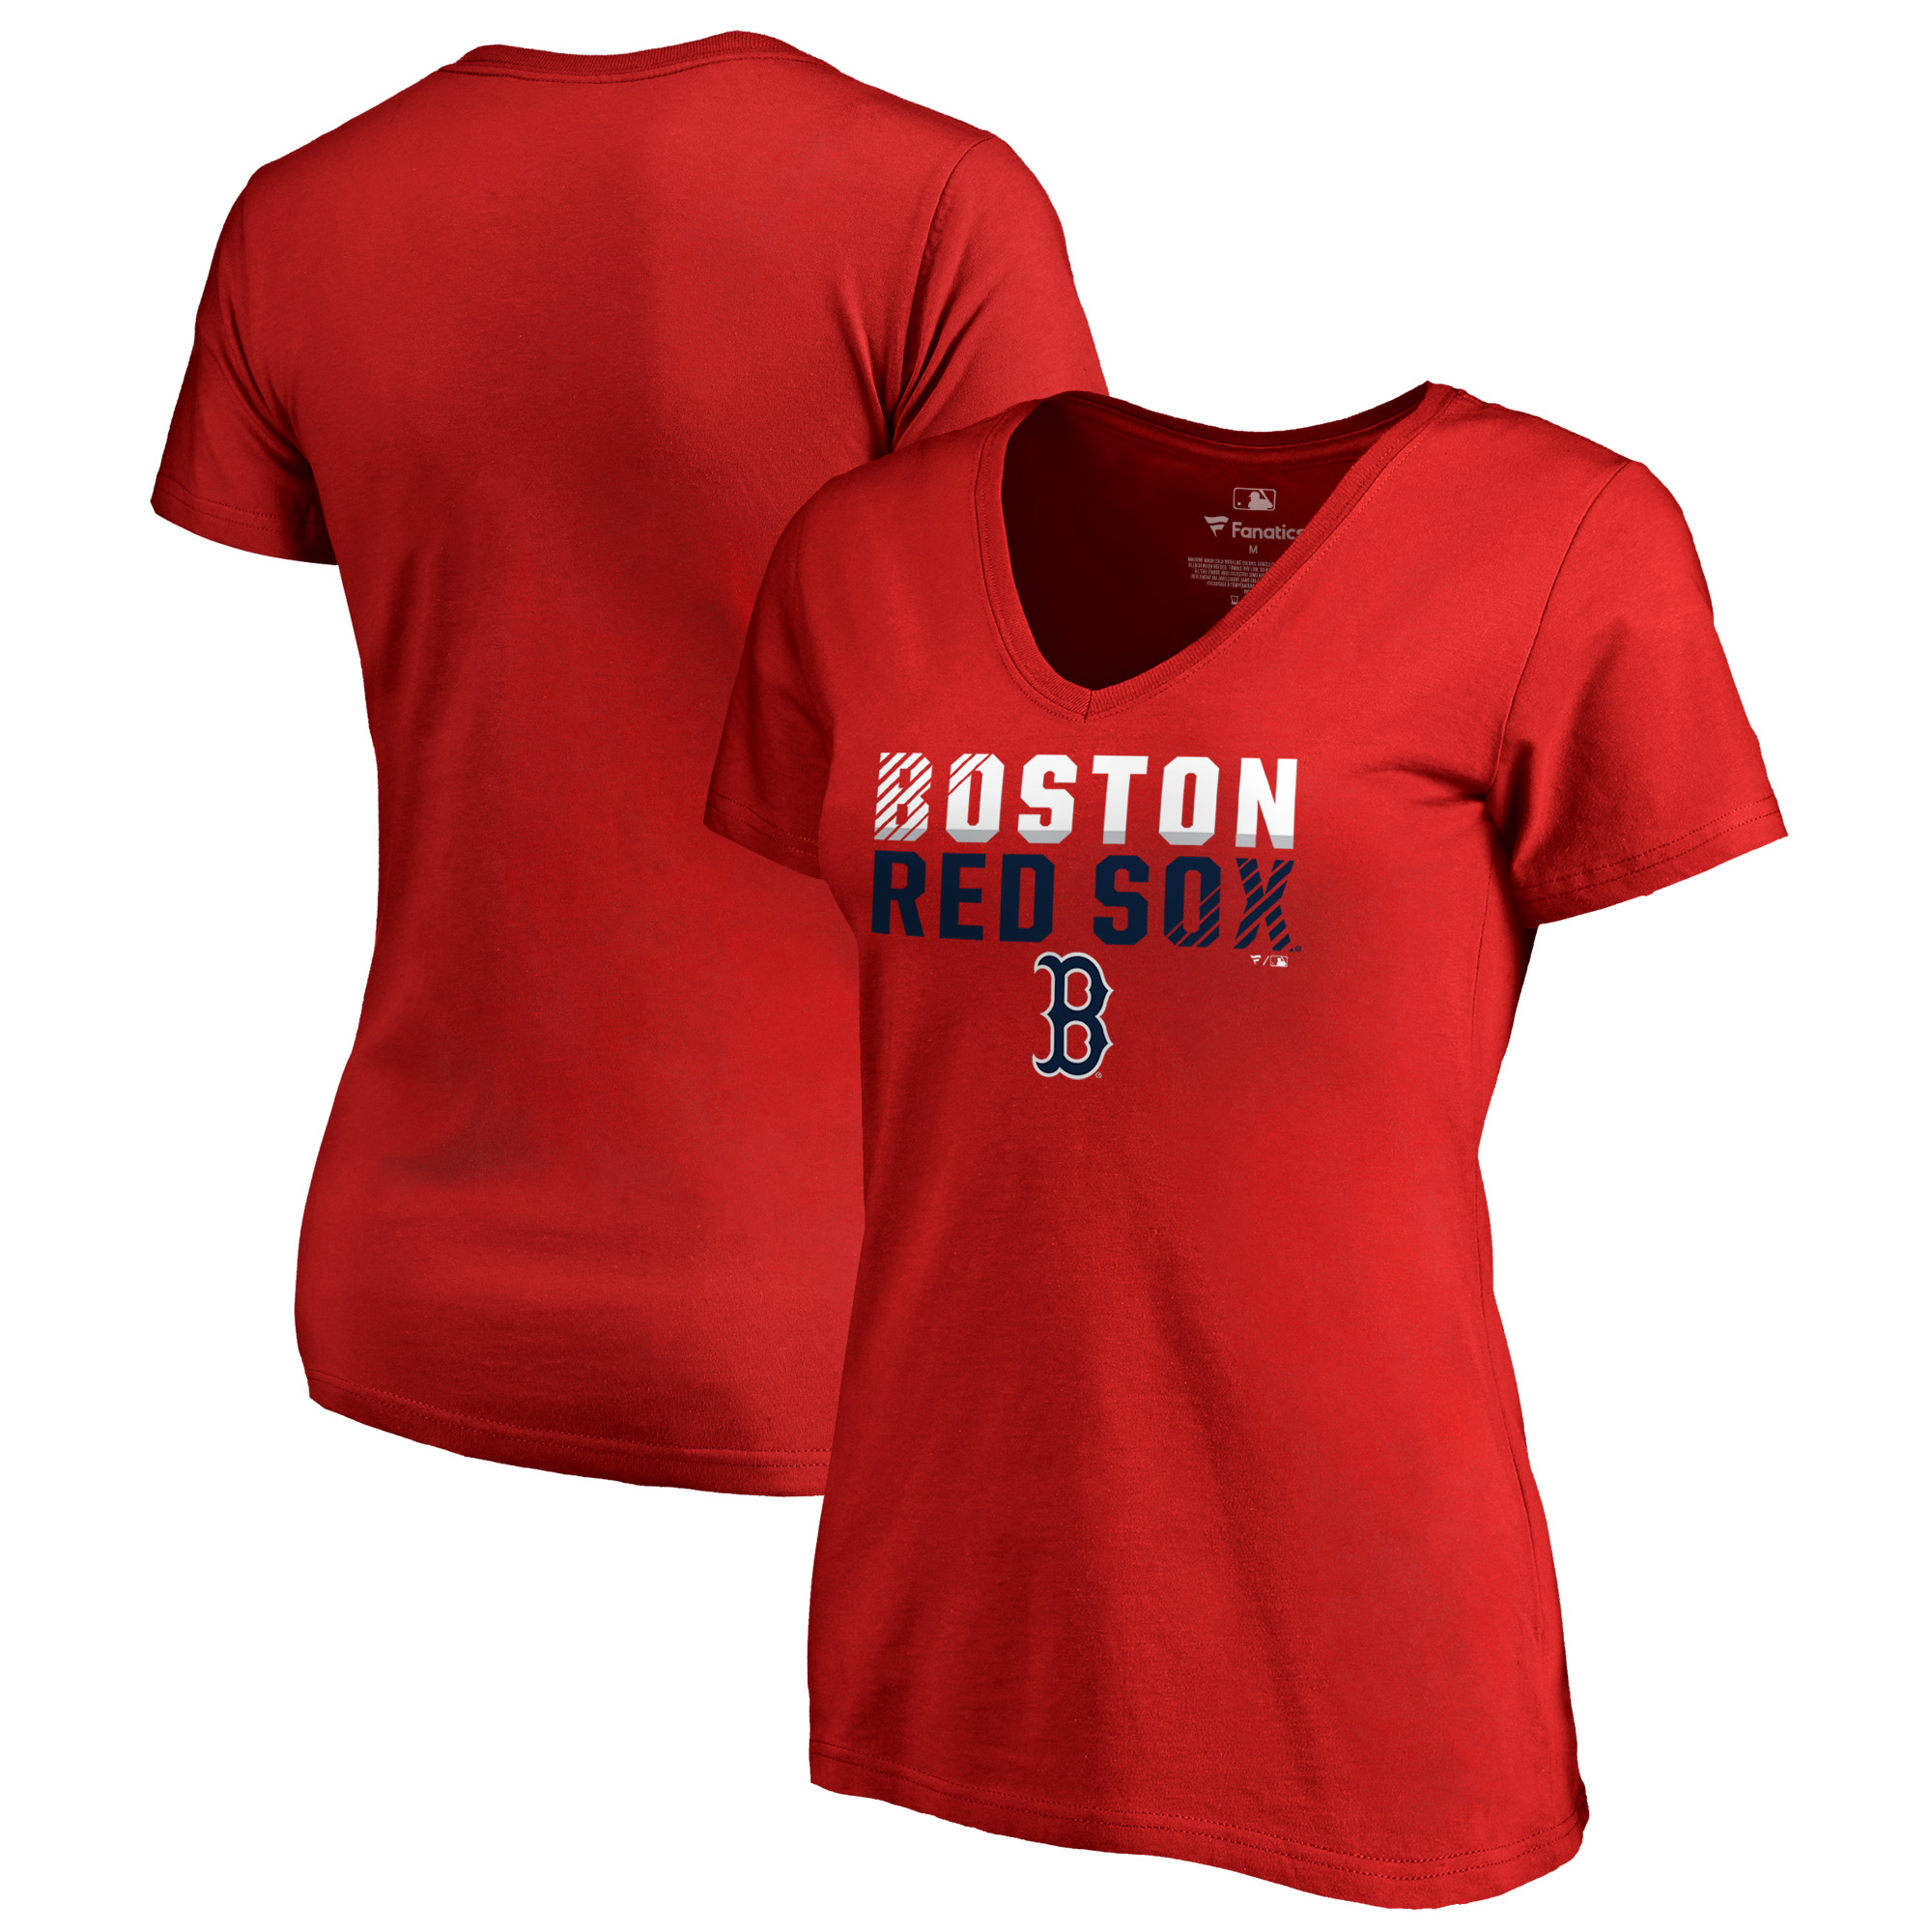 Boston Red Sox Fanatics Branded Women's Fade Out Plus Size V-Neck T-Shirt - Red